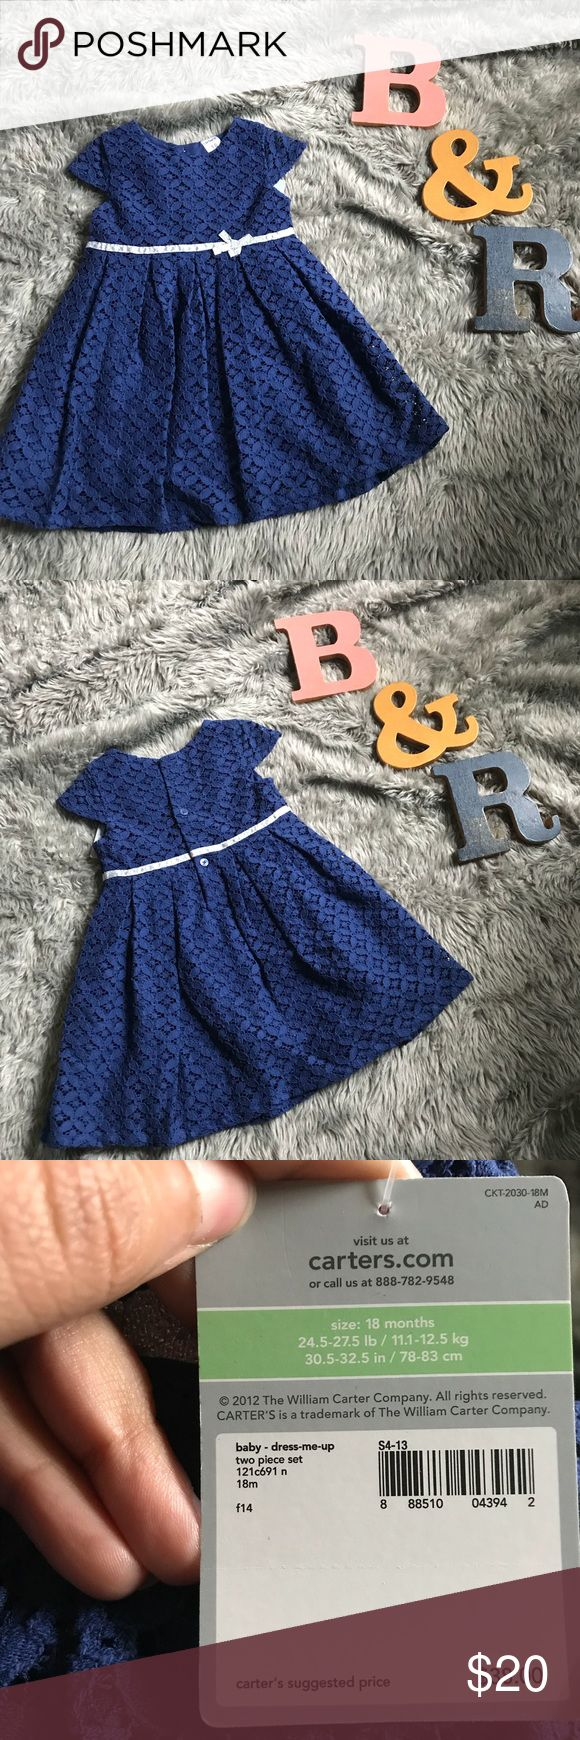 Navy blue and silver bow dress from Carters! Navy blue floral lace material with a silver bow. Brand new, tags still on. Carter's Dresses Formal